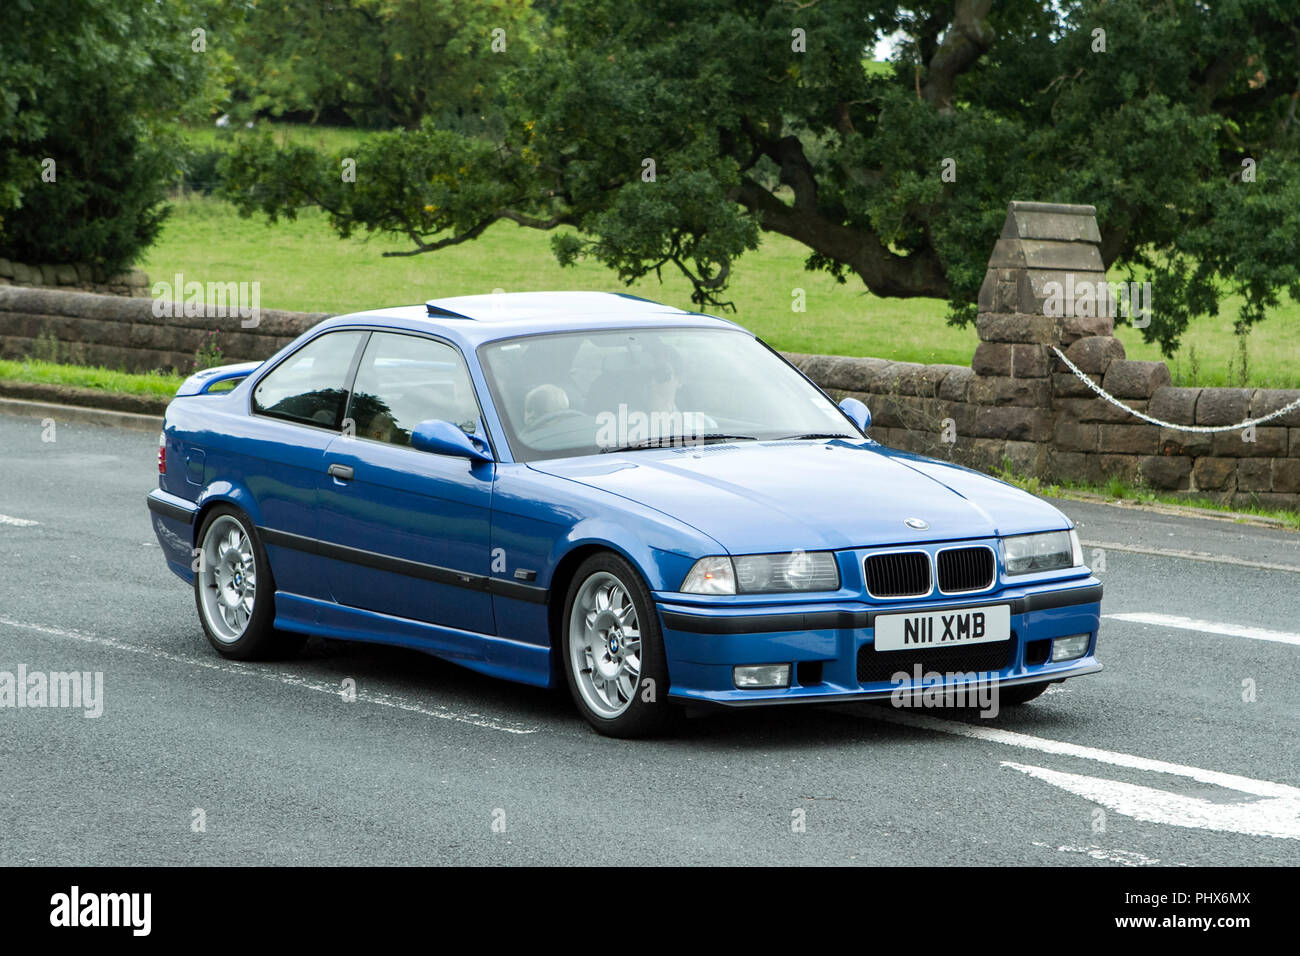 Bmw Rally Car High Resolution Stock Photography And Images Alamy